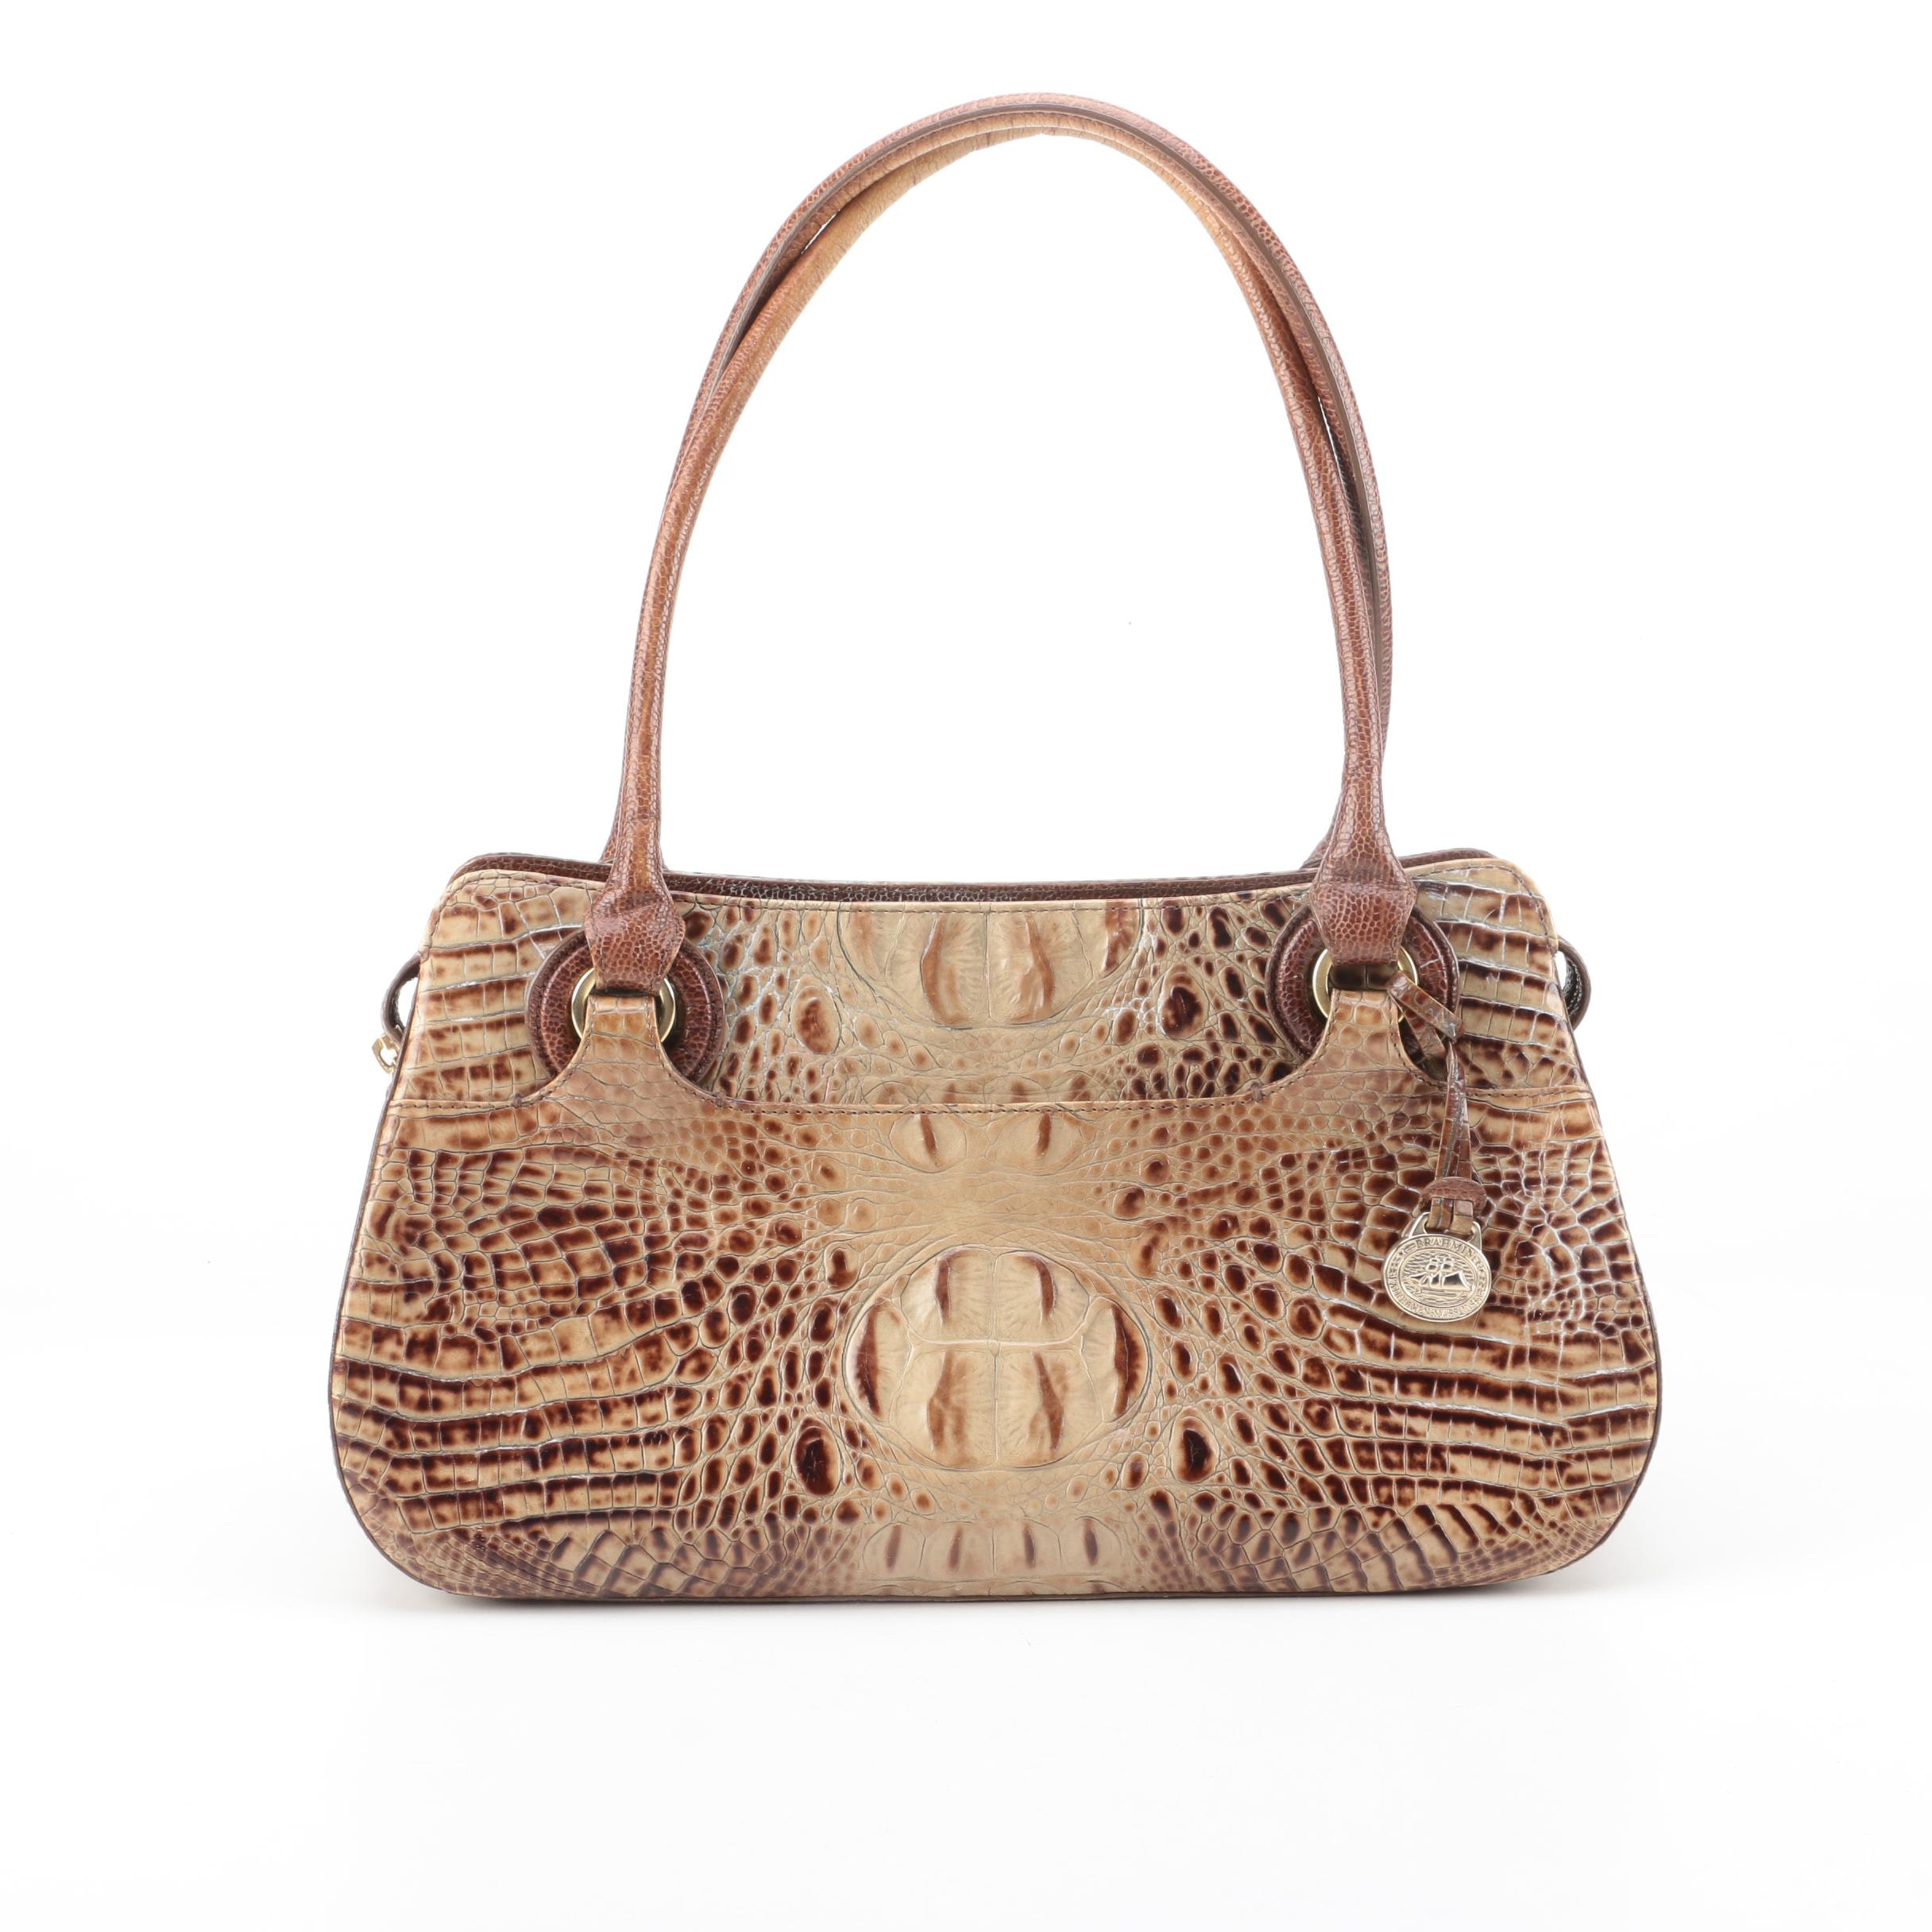 Brahmin Crocodile Embossed Leather Handbag